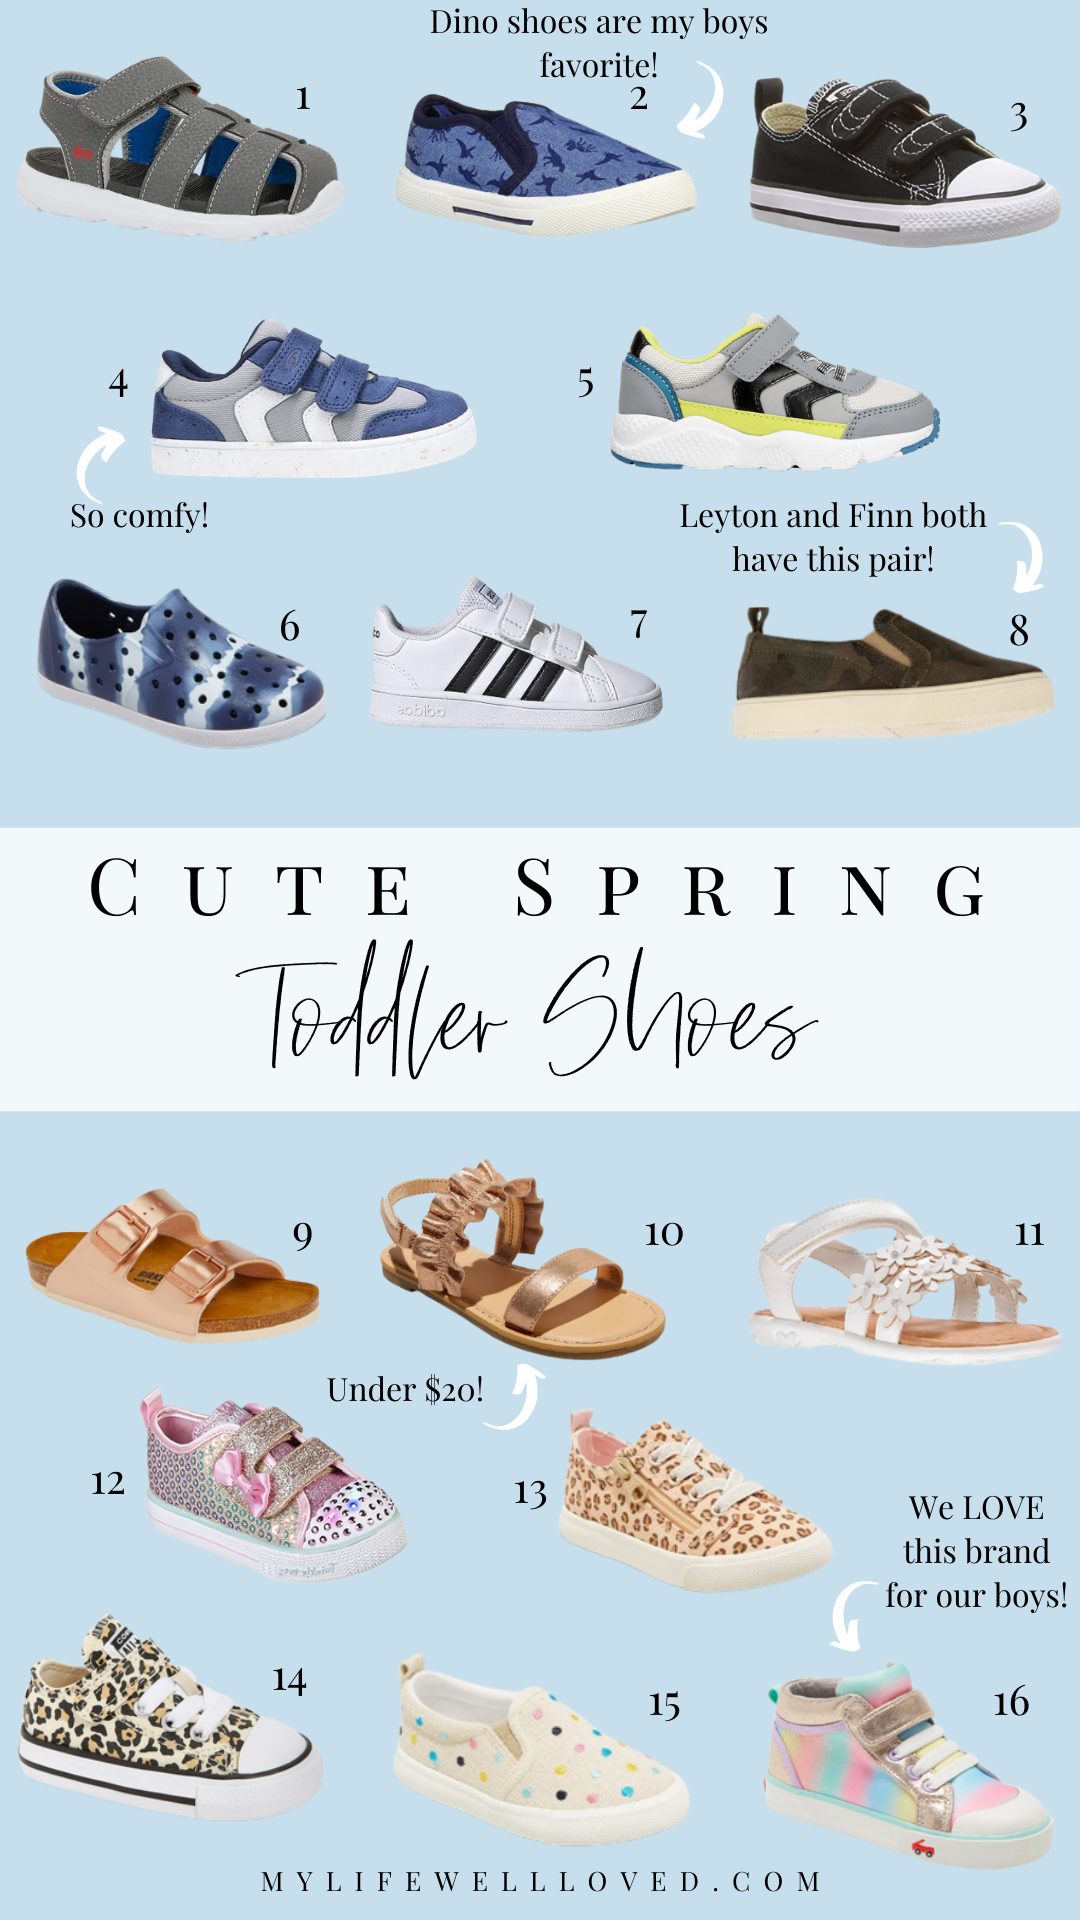 Target Favorites: Cute Spring Shoes For The Whole Family by Alabama Style + Fashion blogger, Heather Brown // My Life Well Loved